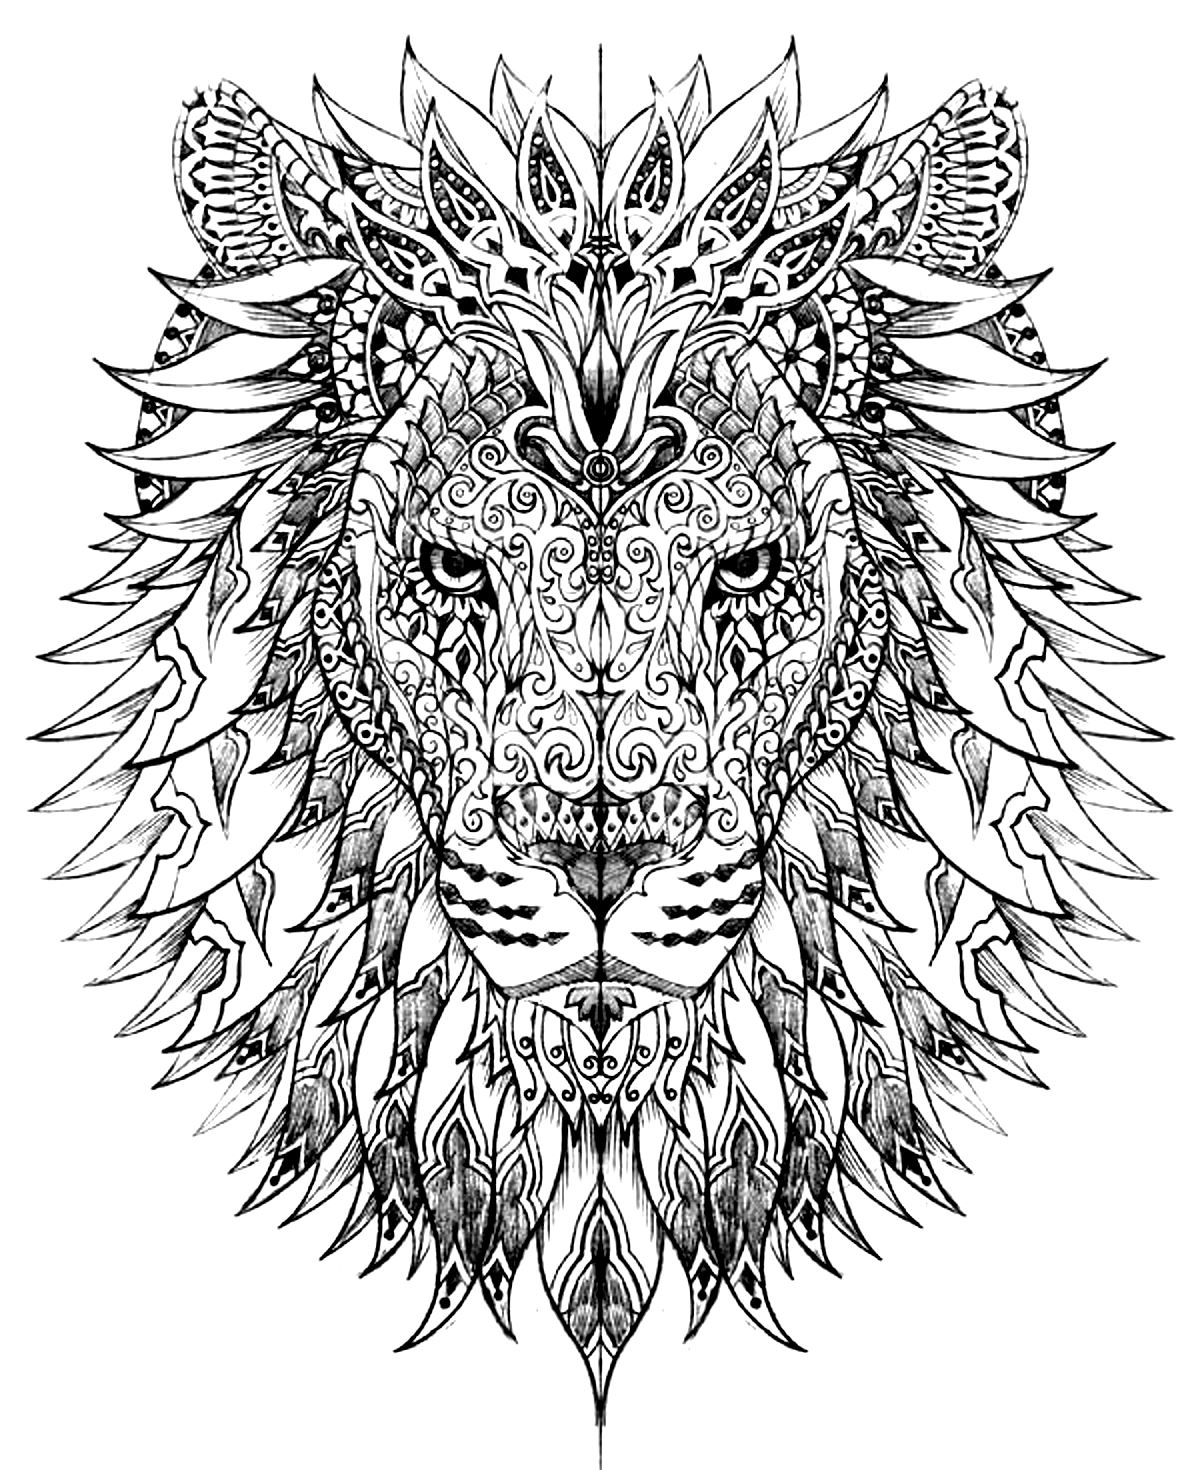 full size coloring pages hard coloring pages for adults best coloring pages for kids size pages full coloring